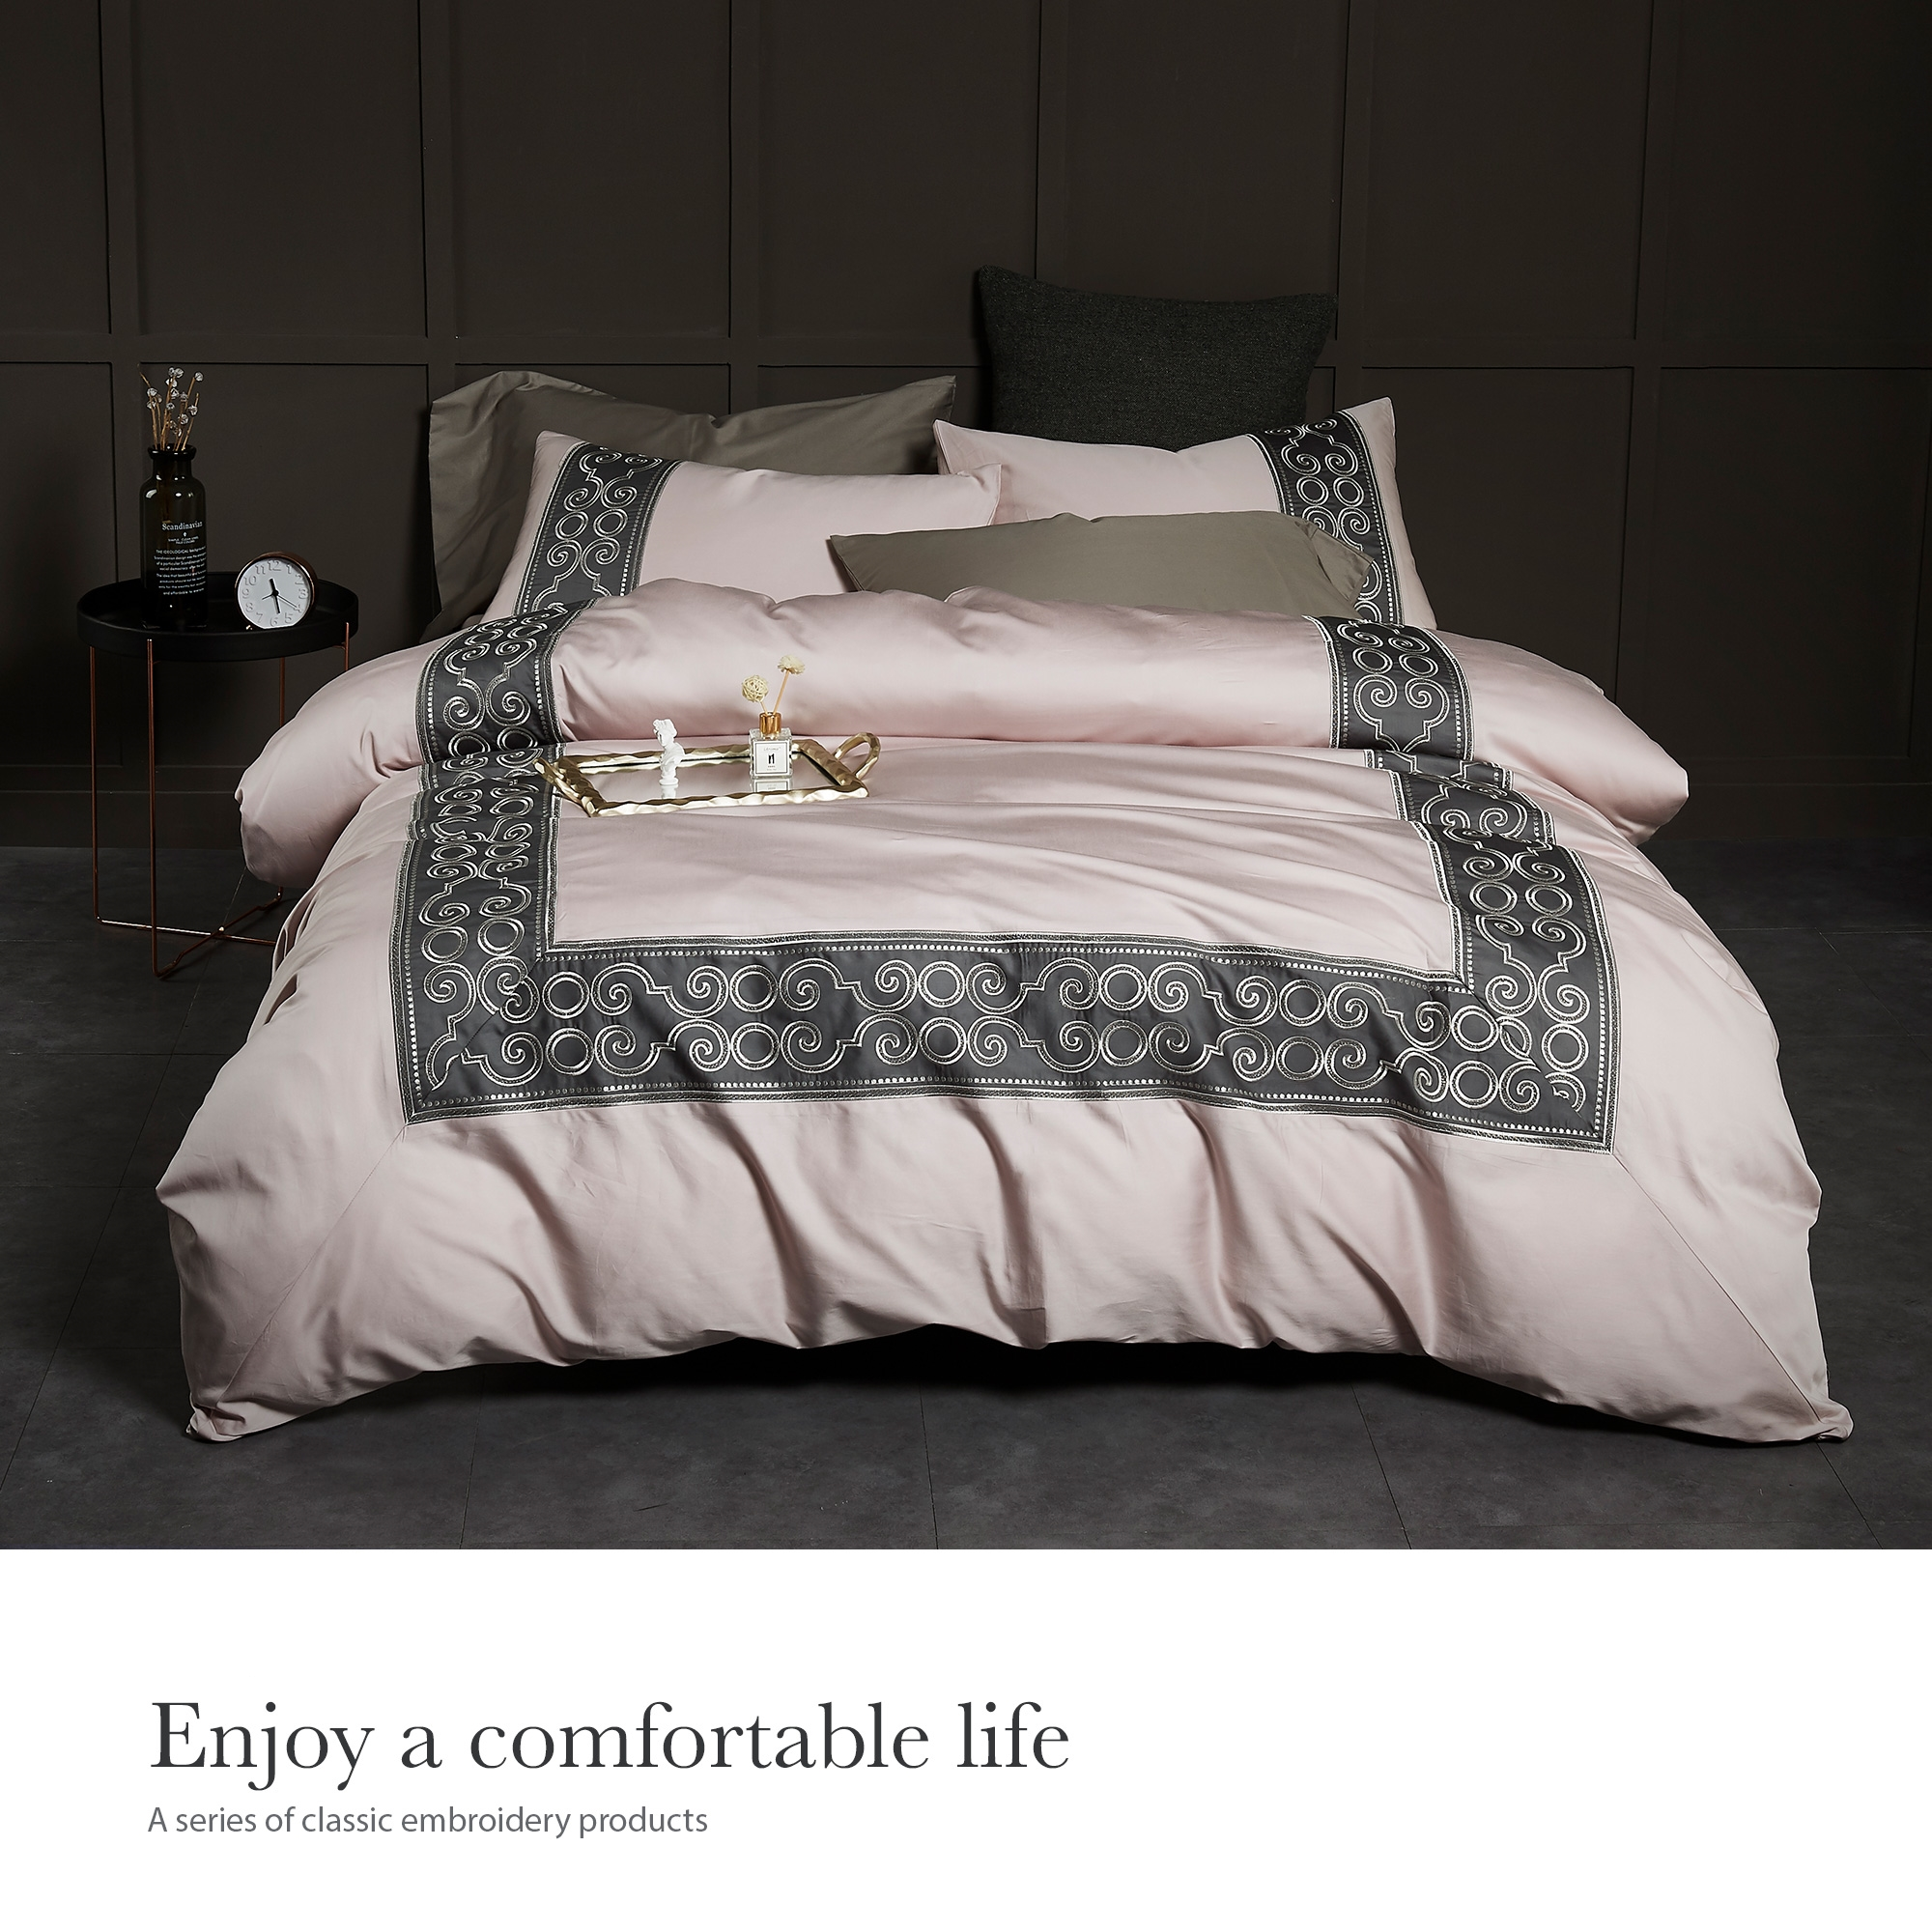 Bedding 5* 400 Thread Count 100% Egyptian Cotton Fitted Sheet Flat Sheet All Uk Sizes Bright Luster Bed Linens & Sets